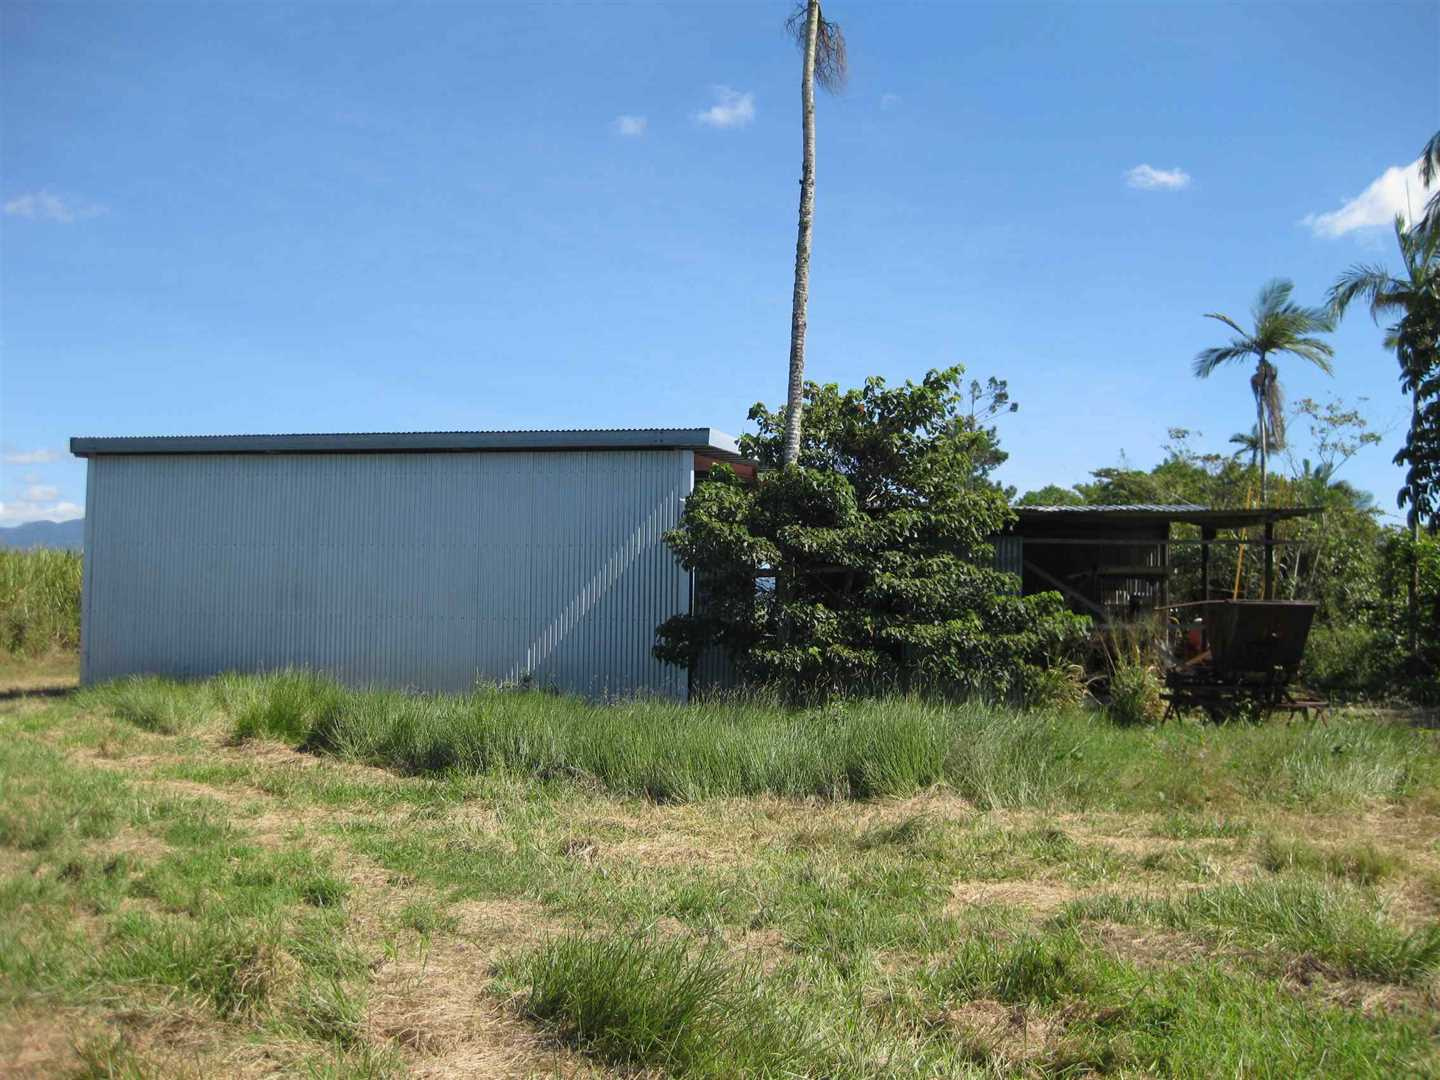 View of part of sheds, photo 5